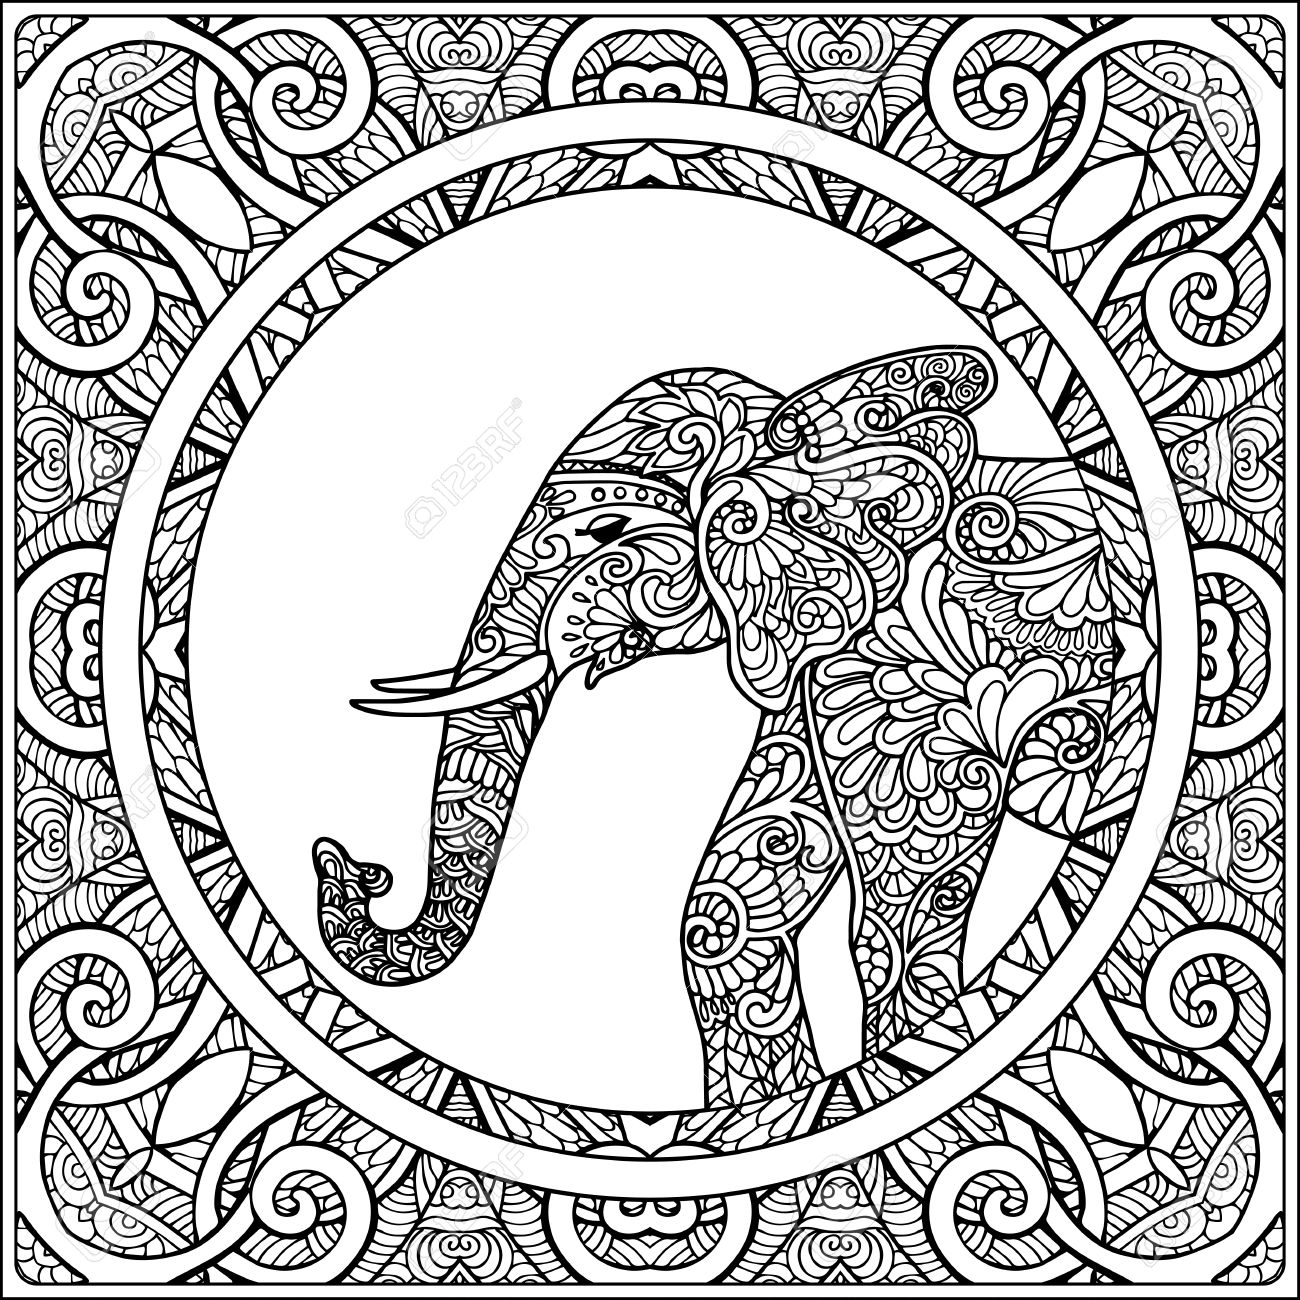 1300x1300 Coloring Page With Elephant In Decorative Mandala Frame